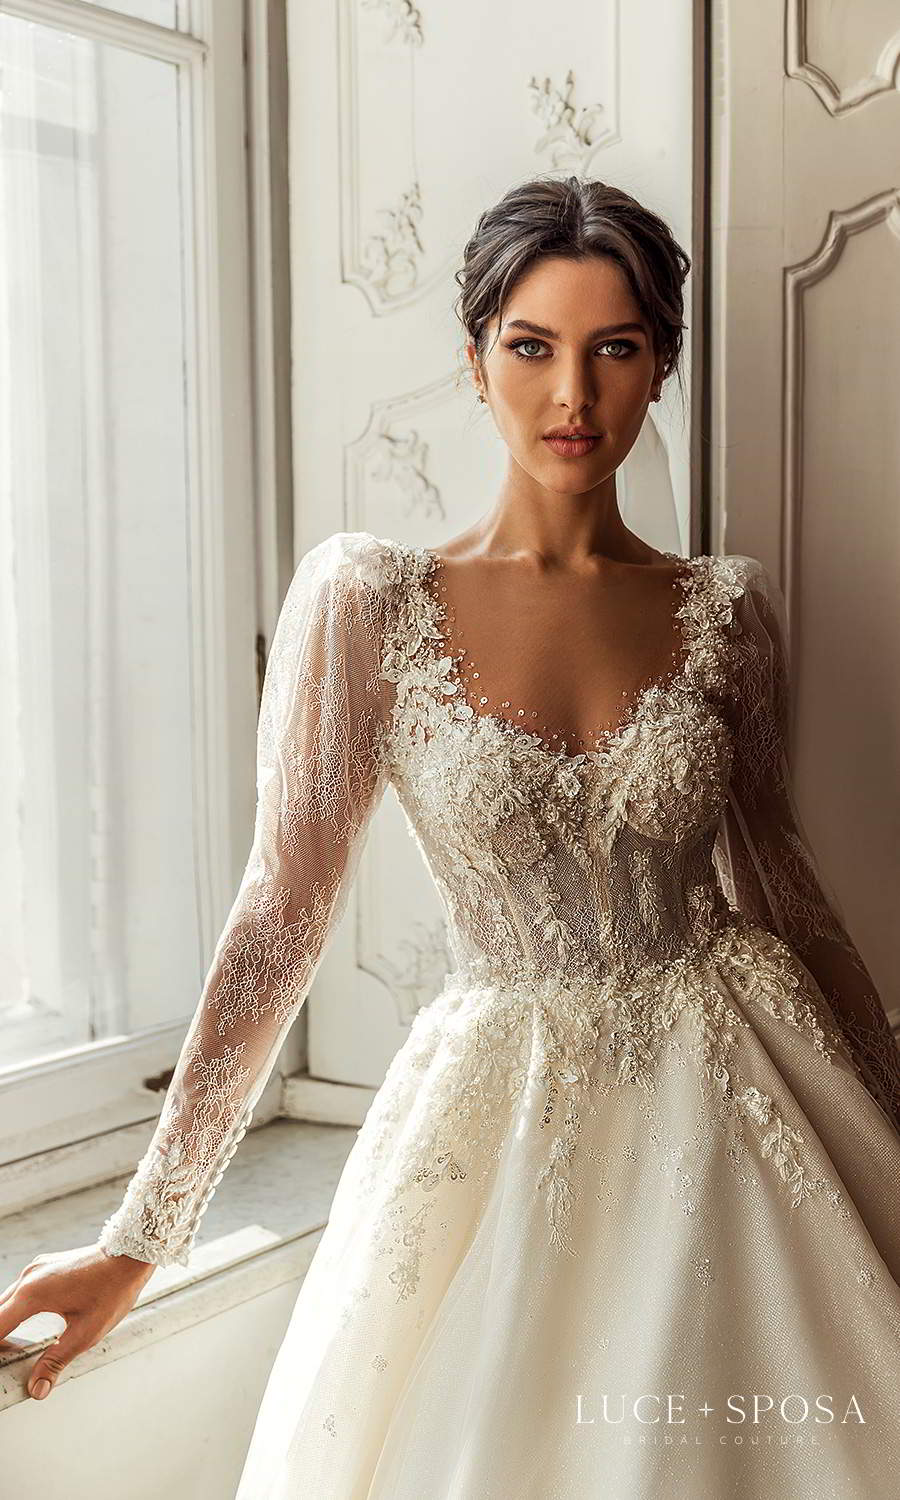 luce sposa 2021 shades of couture bridal sheer long puff sleeves queen anne neckline fully embellished a line ball gownw wedding dress chapel train (anna) zv